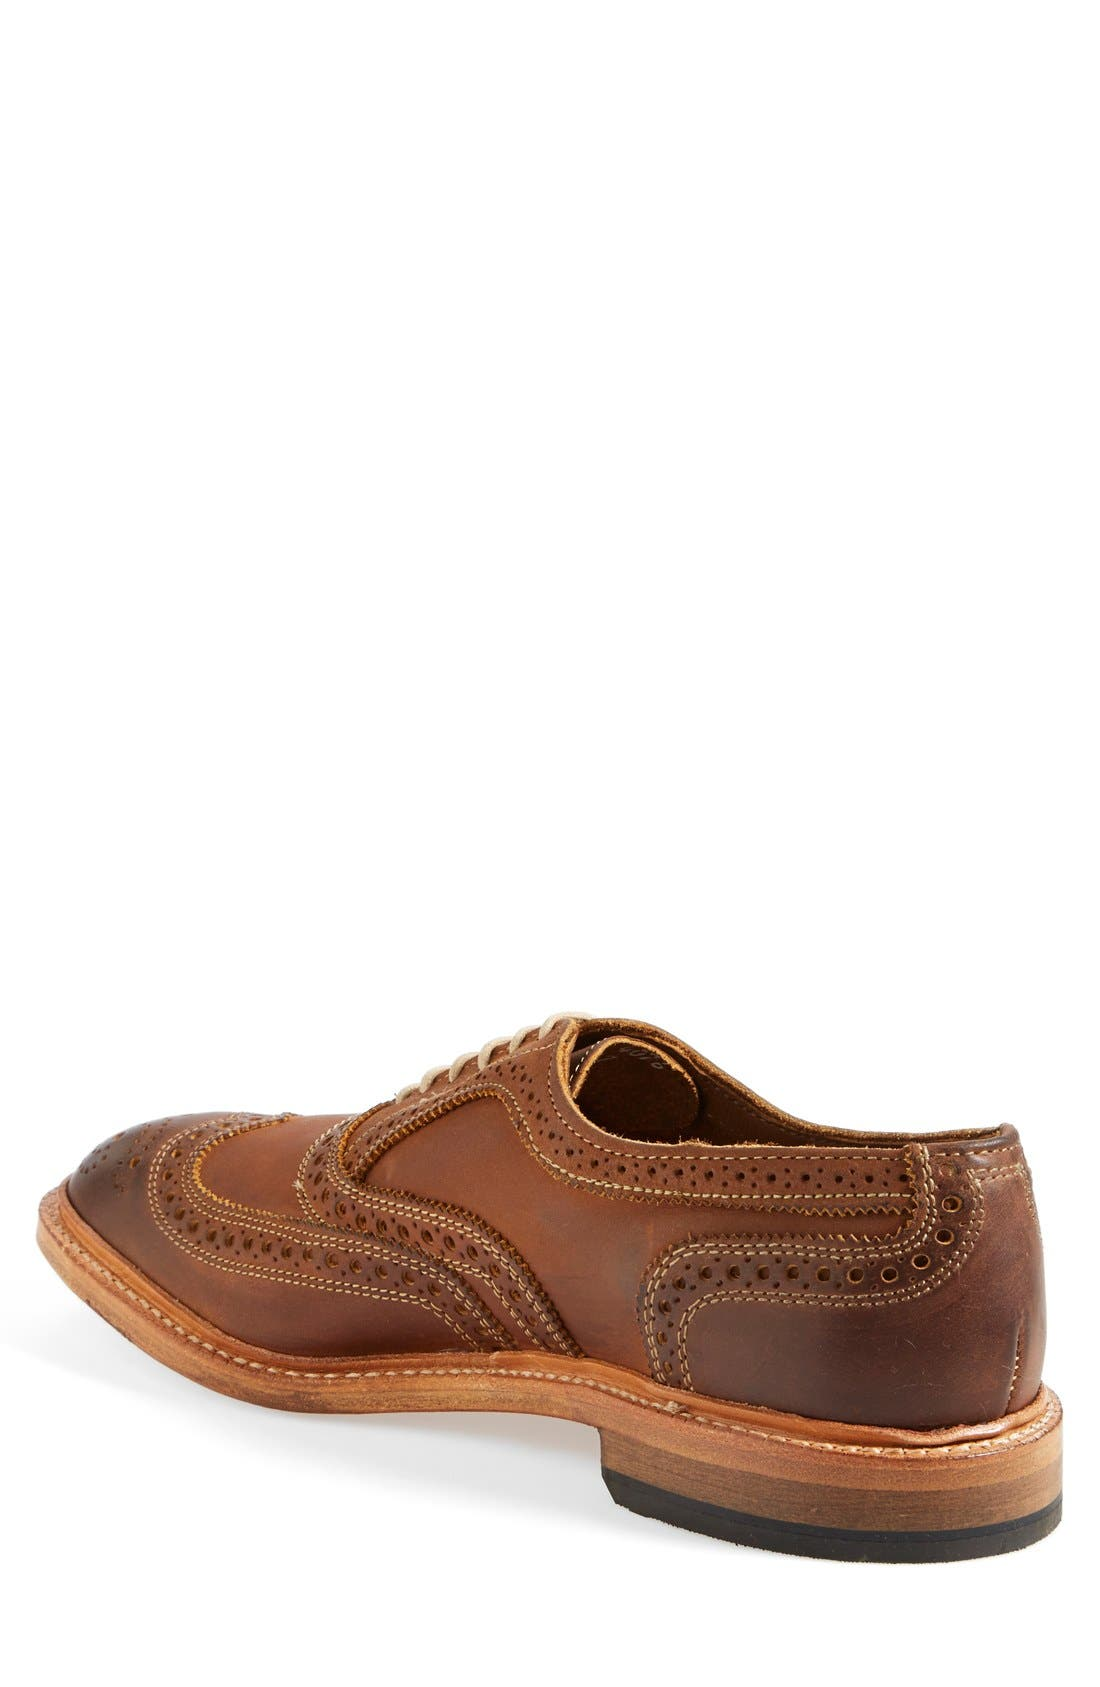 Alternate Image 2  - Allen Edmonds 'Neumok' Wingtip (Men) (Nordstrom Exclusive)